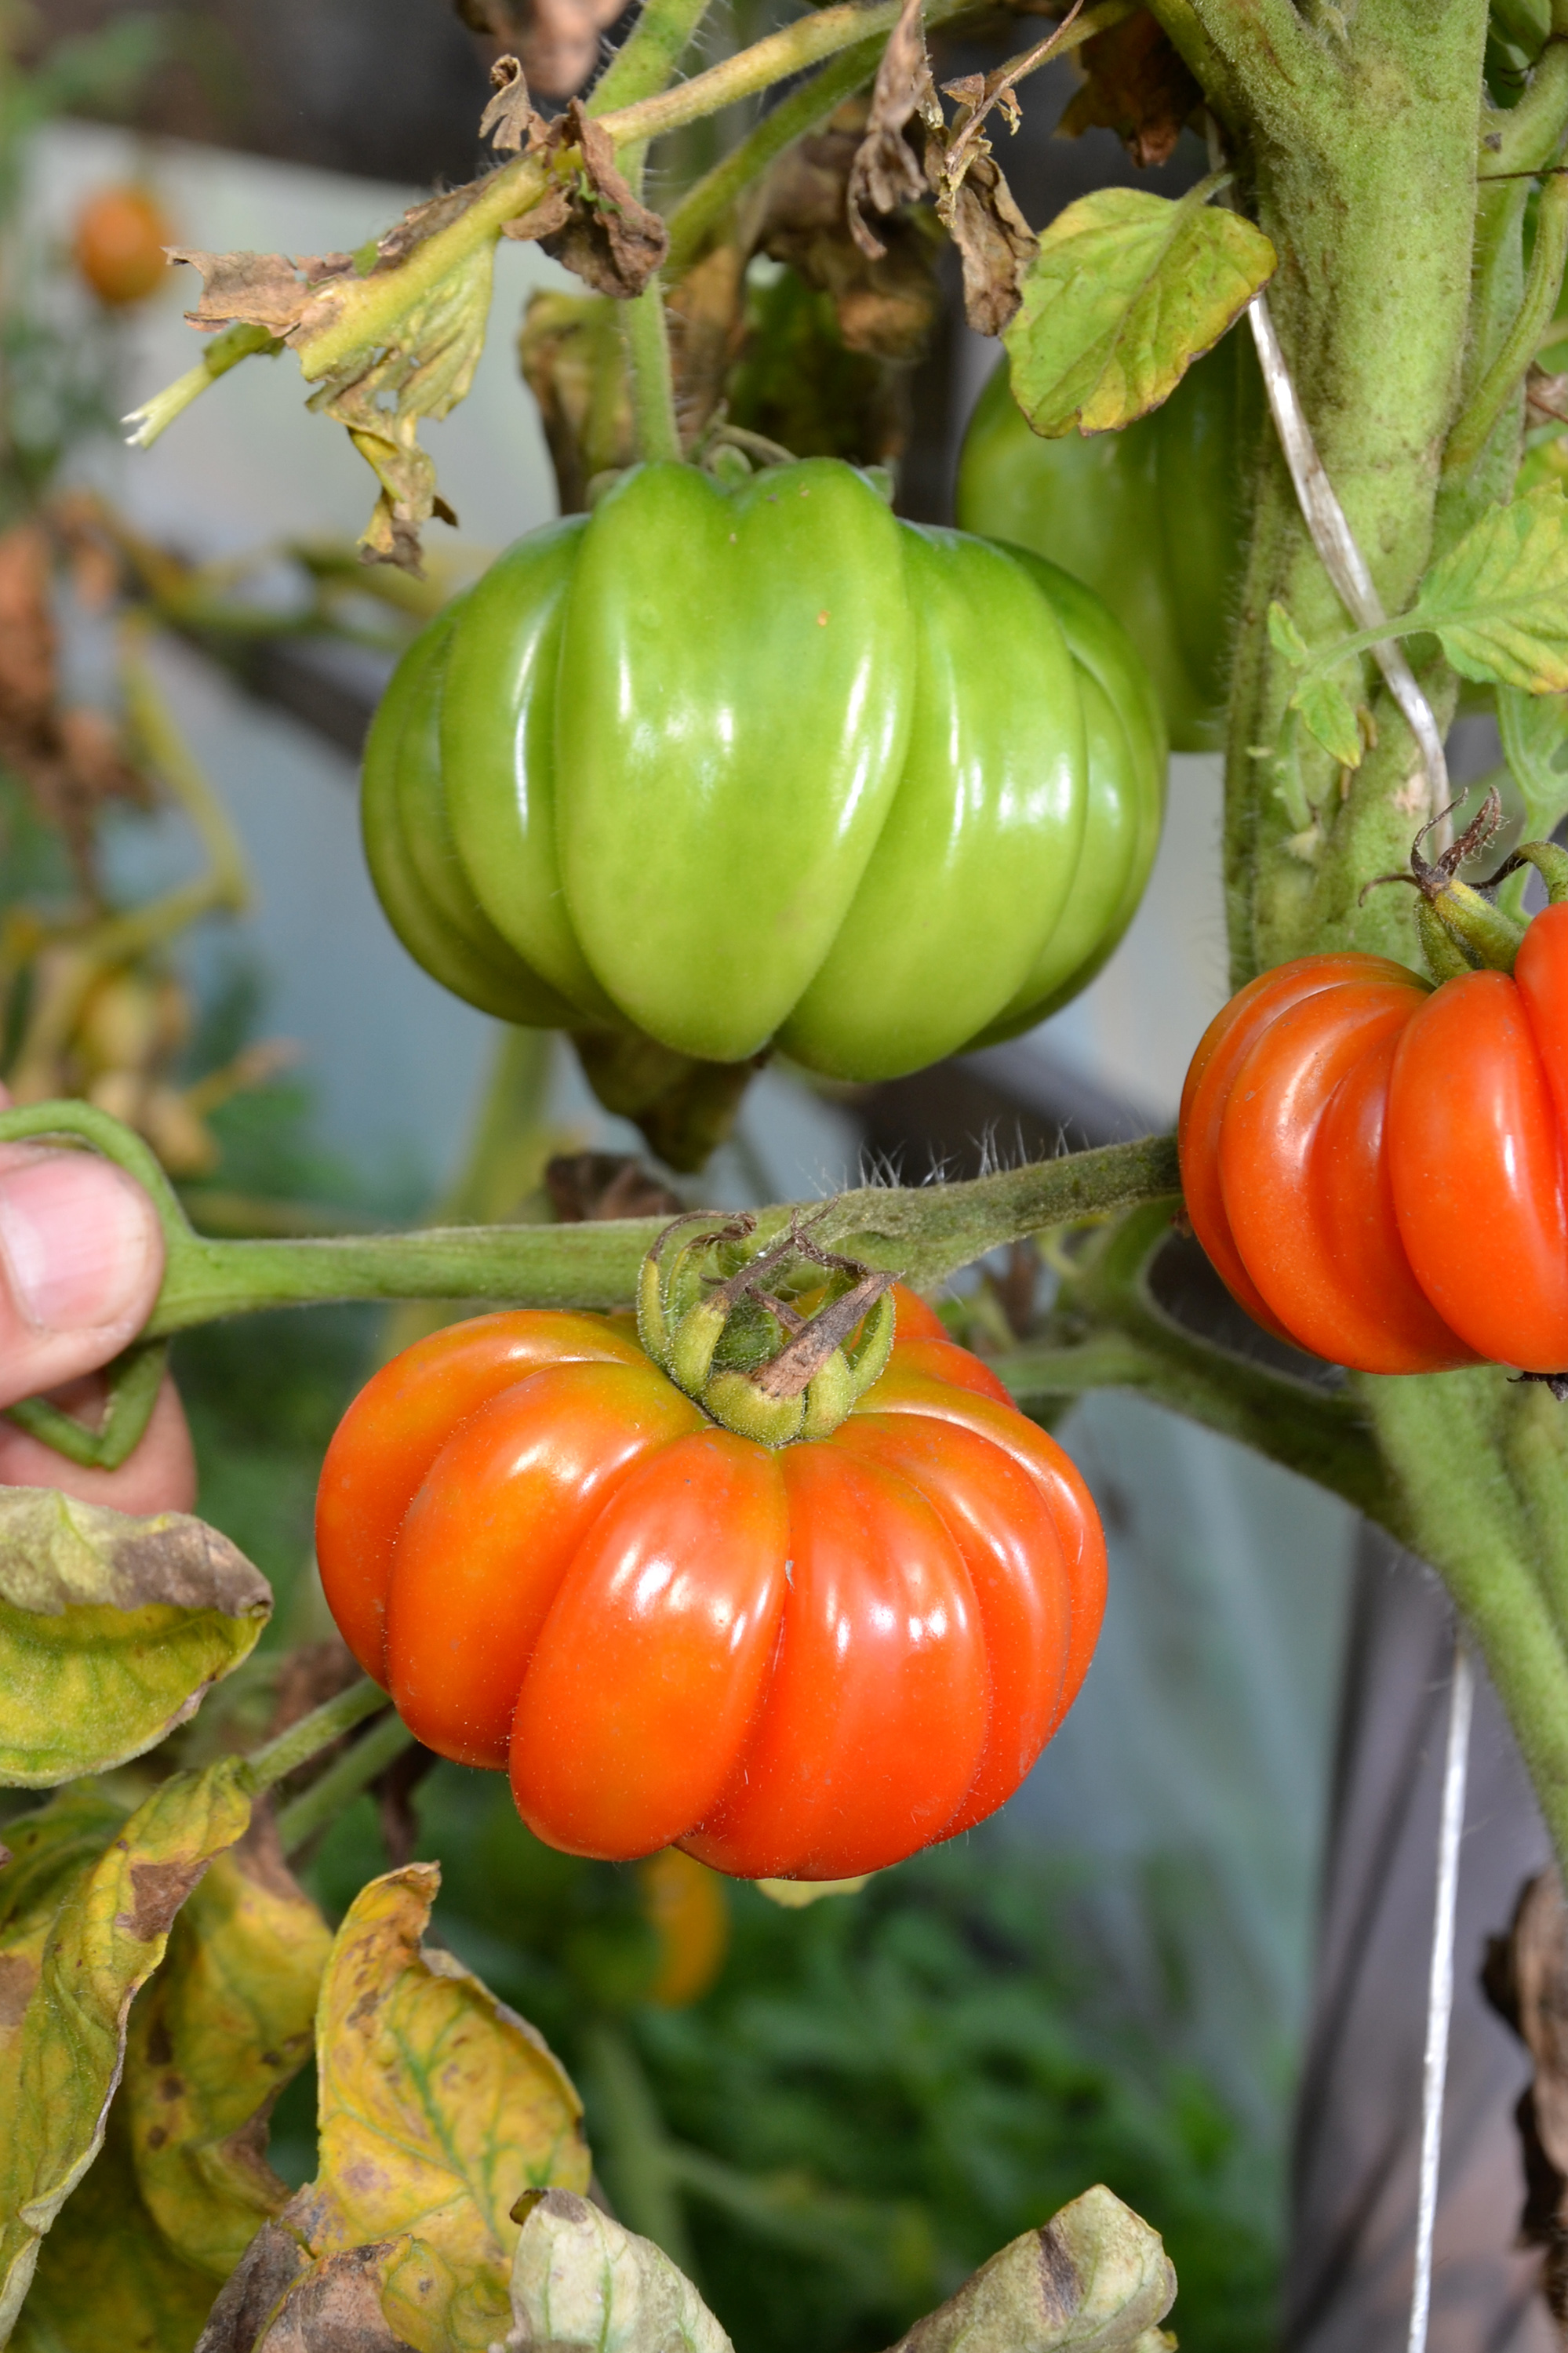 Tomatoes, Agricultural, Ripening, Plant, Plants, HQ Photo